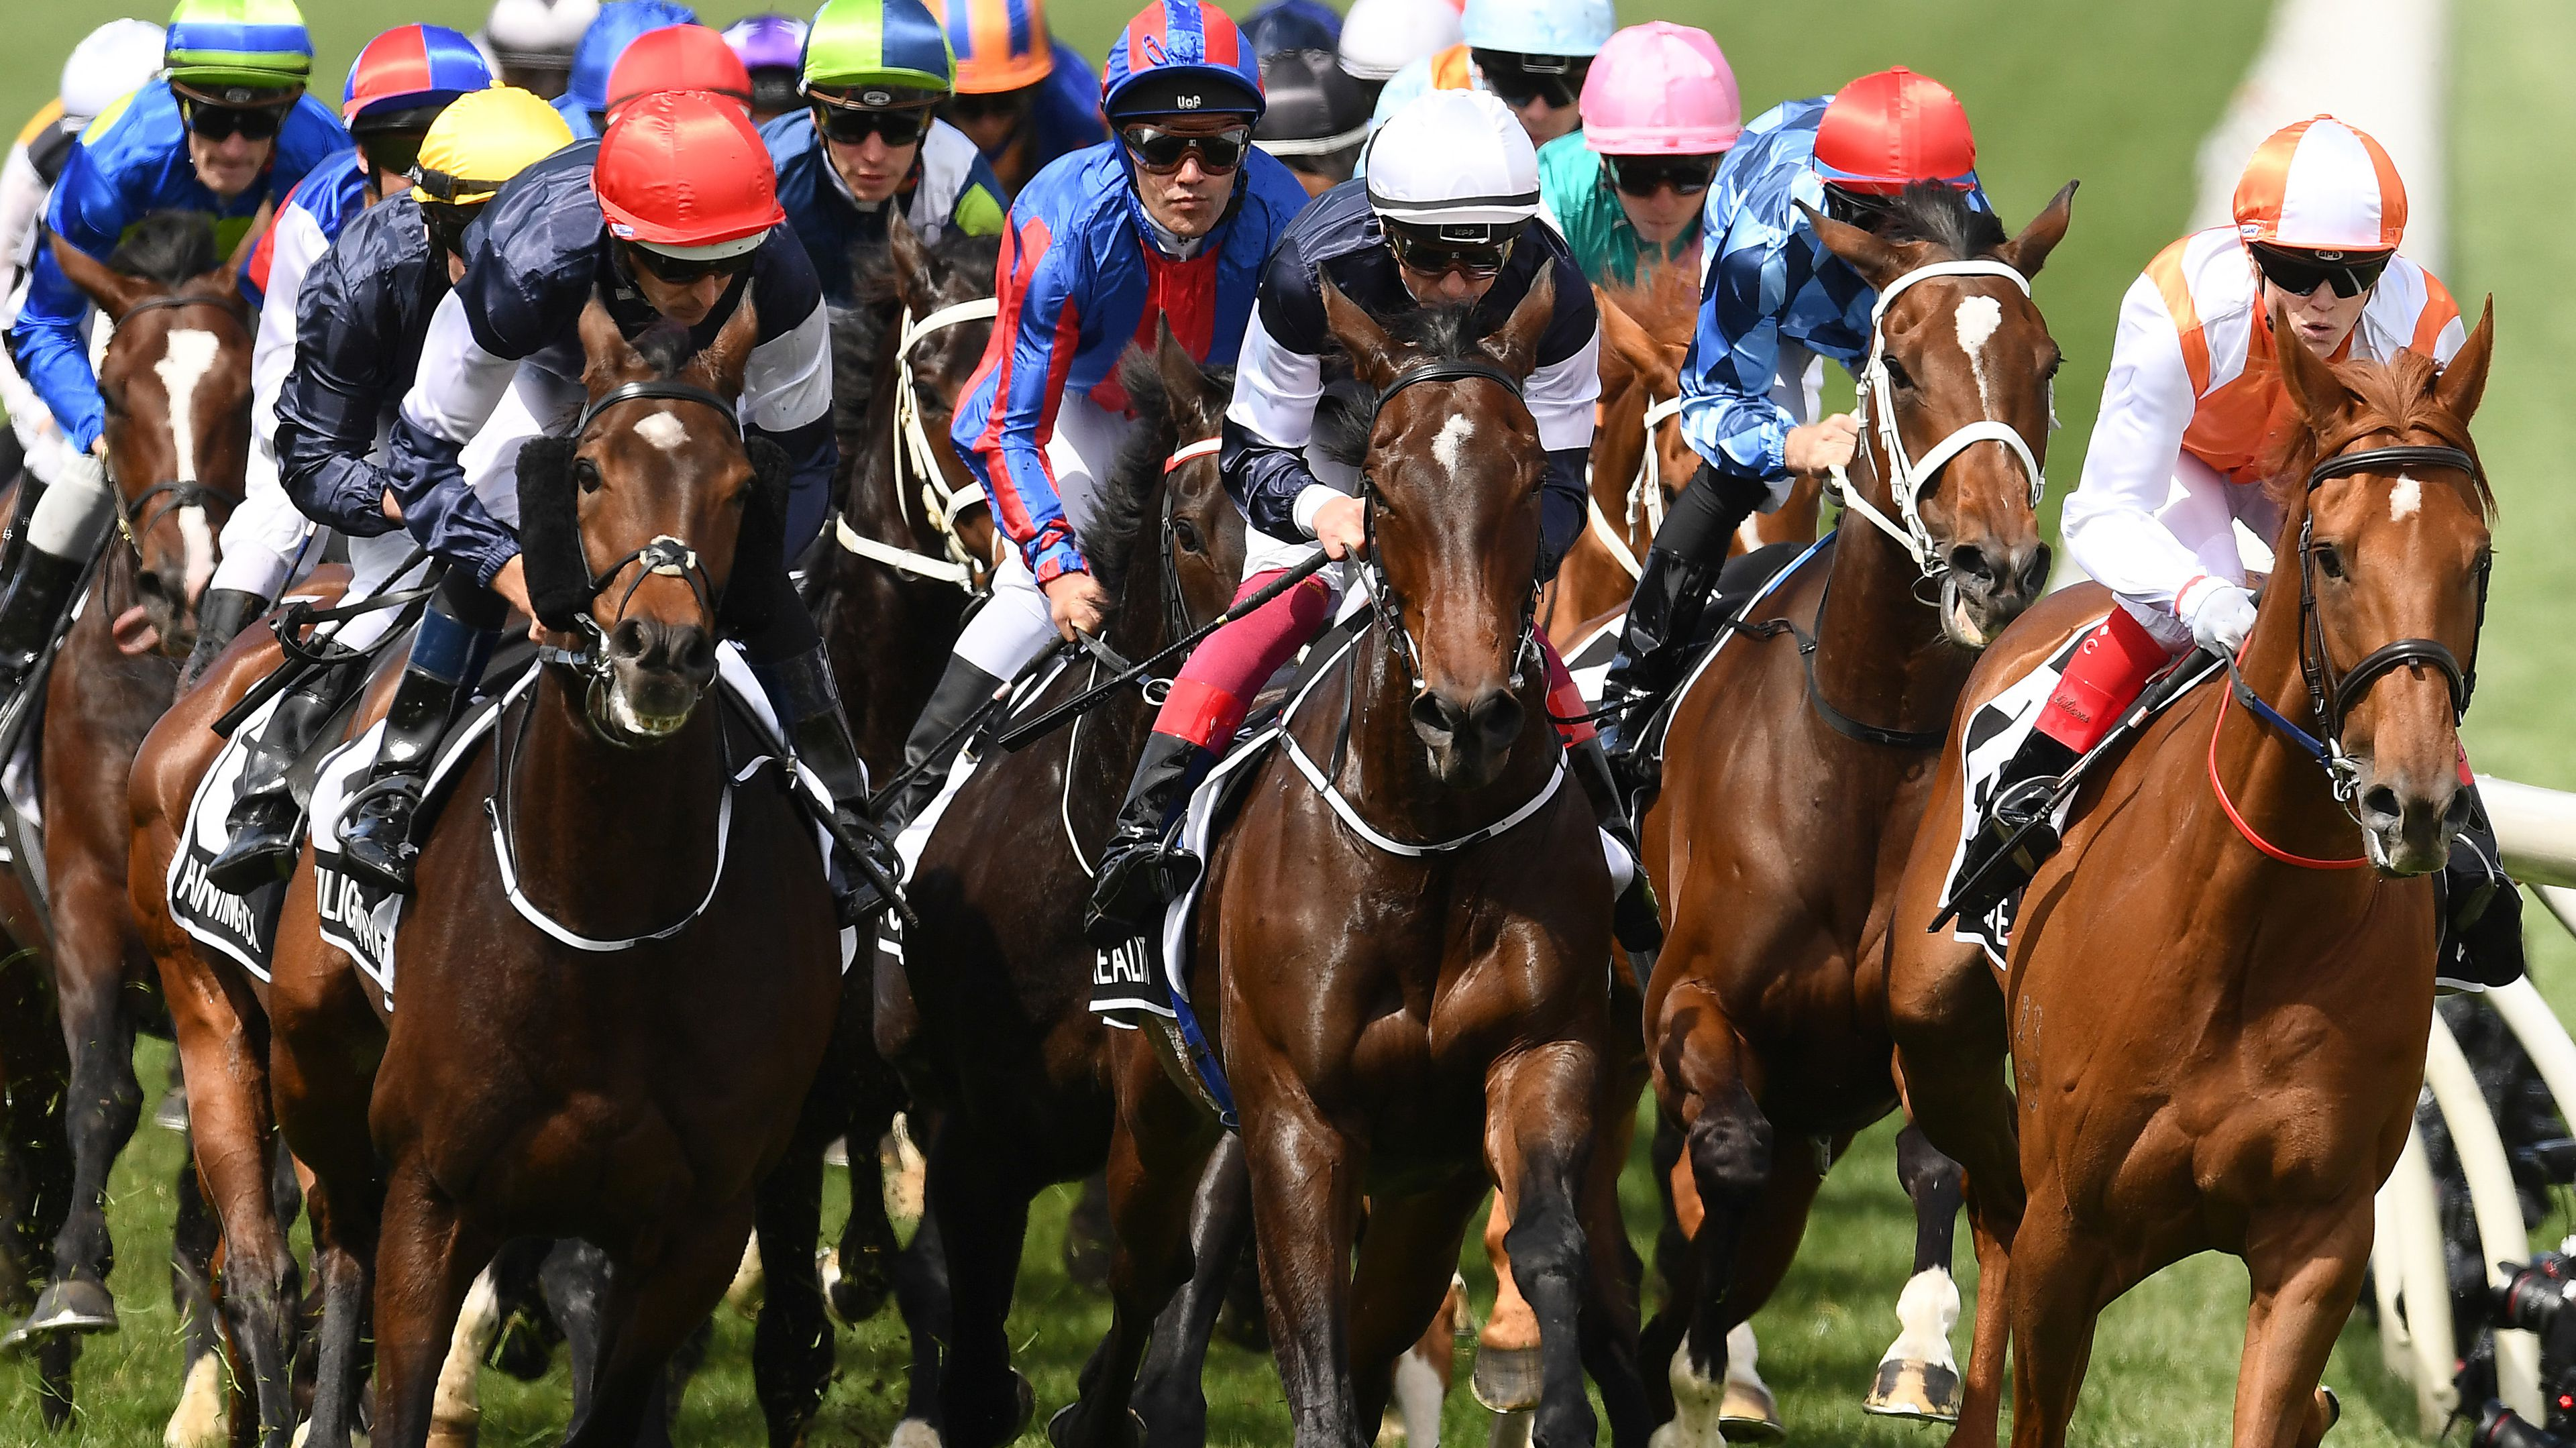 Craig Williams leads the Melbourne Cup field home on Vow and Declare.